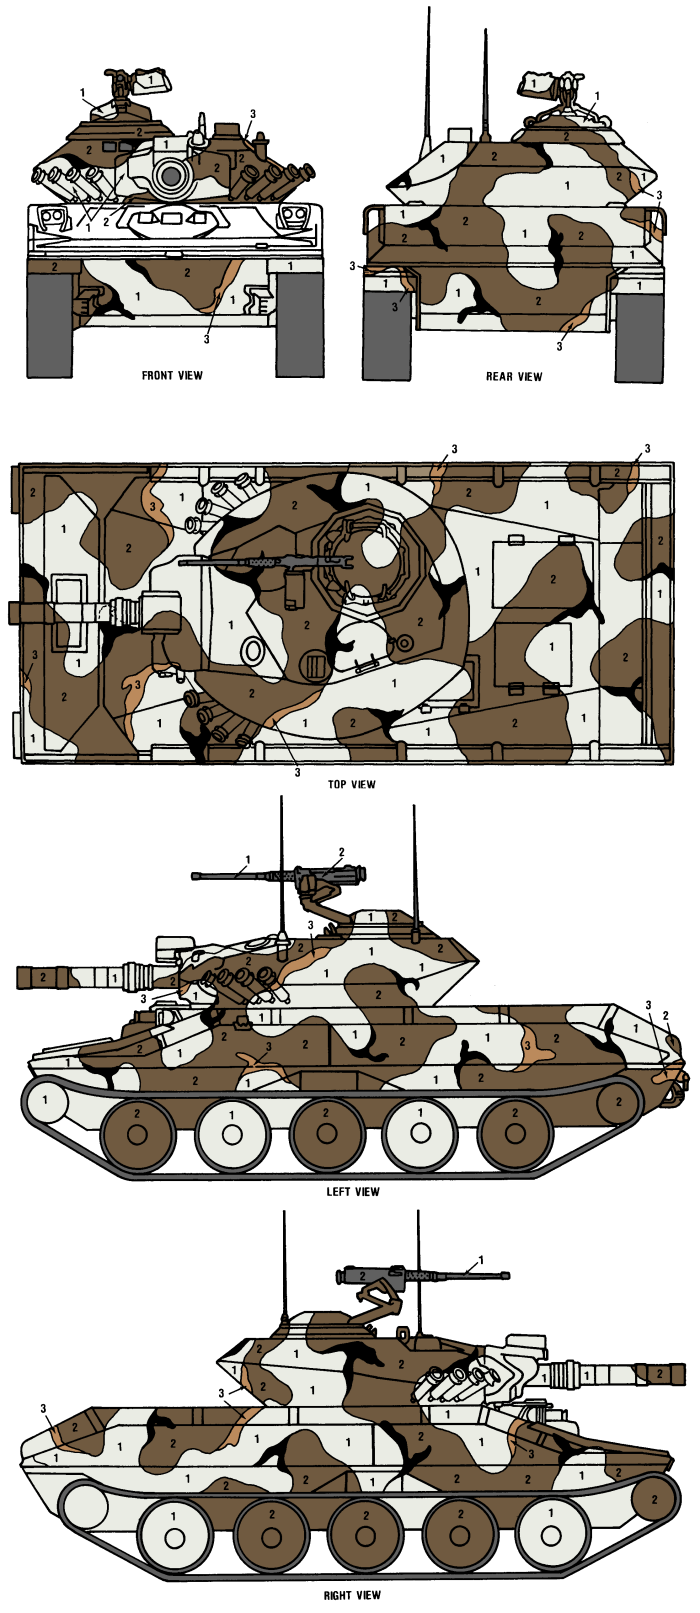 M551 Sheridan Merdc Snow W Open Terrain Camouflage Color Profile And Paint Guide Camouflage Colors Tanks Military Toy Tanks